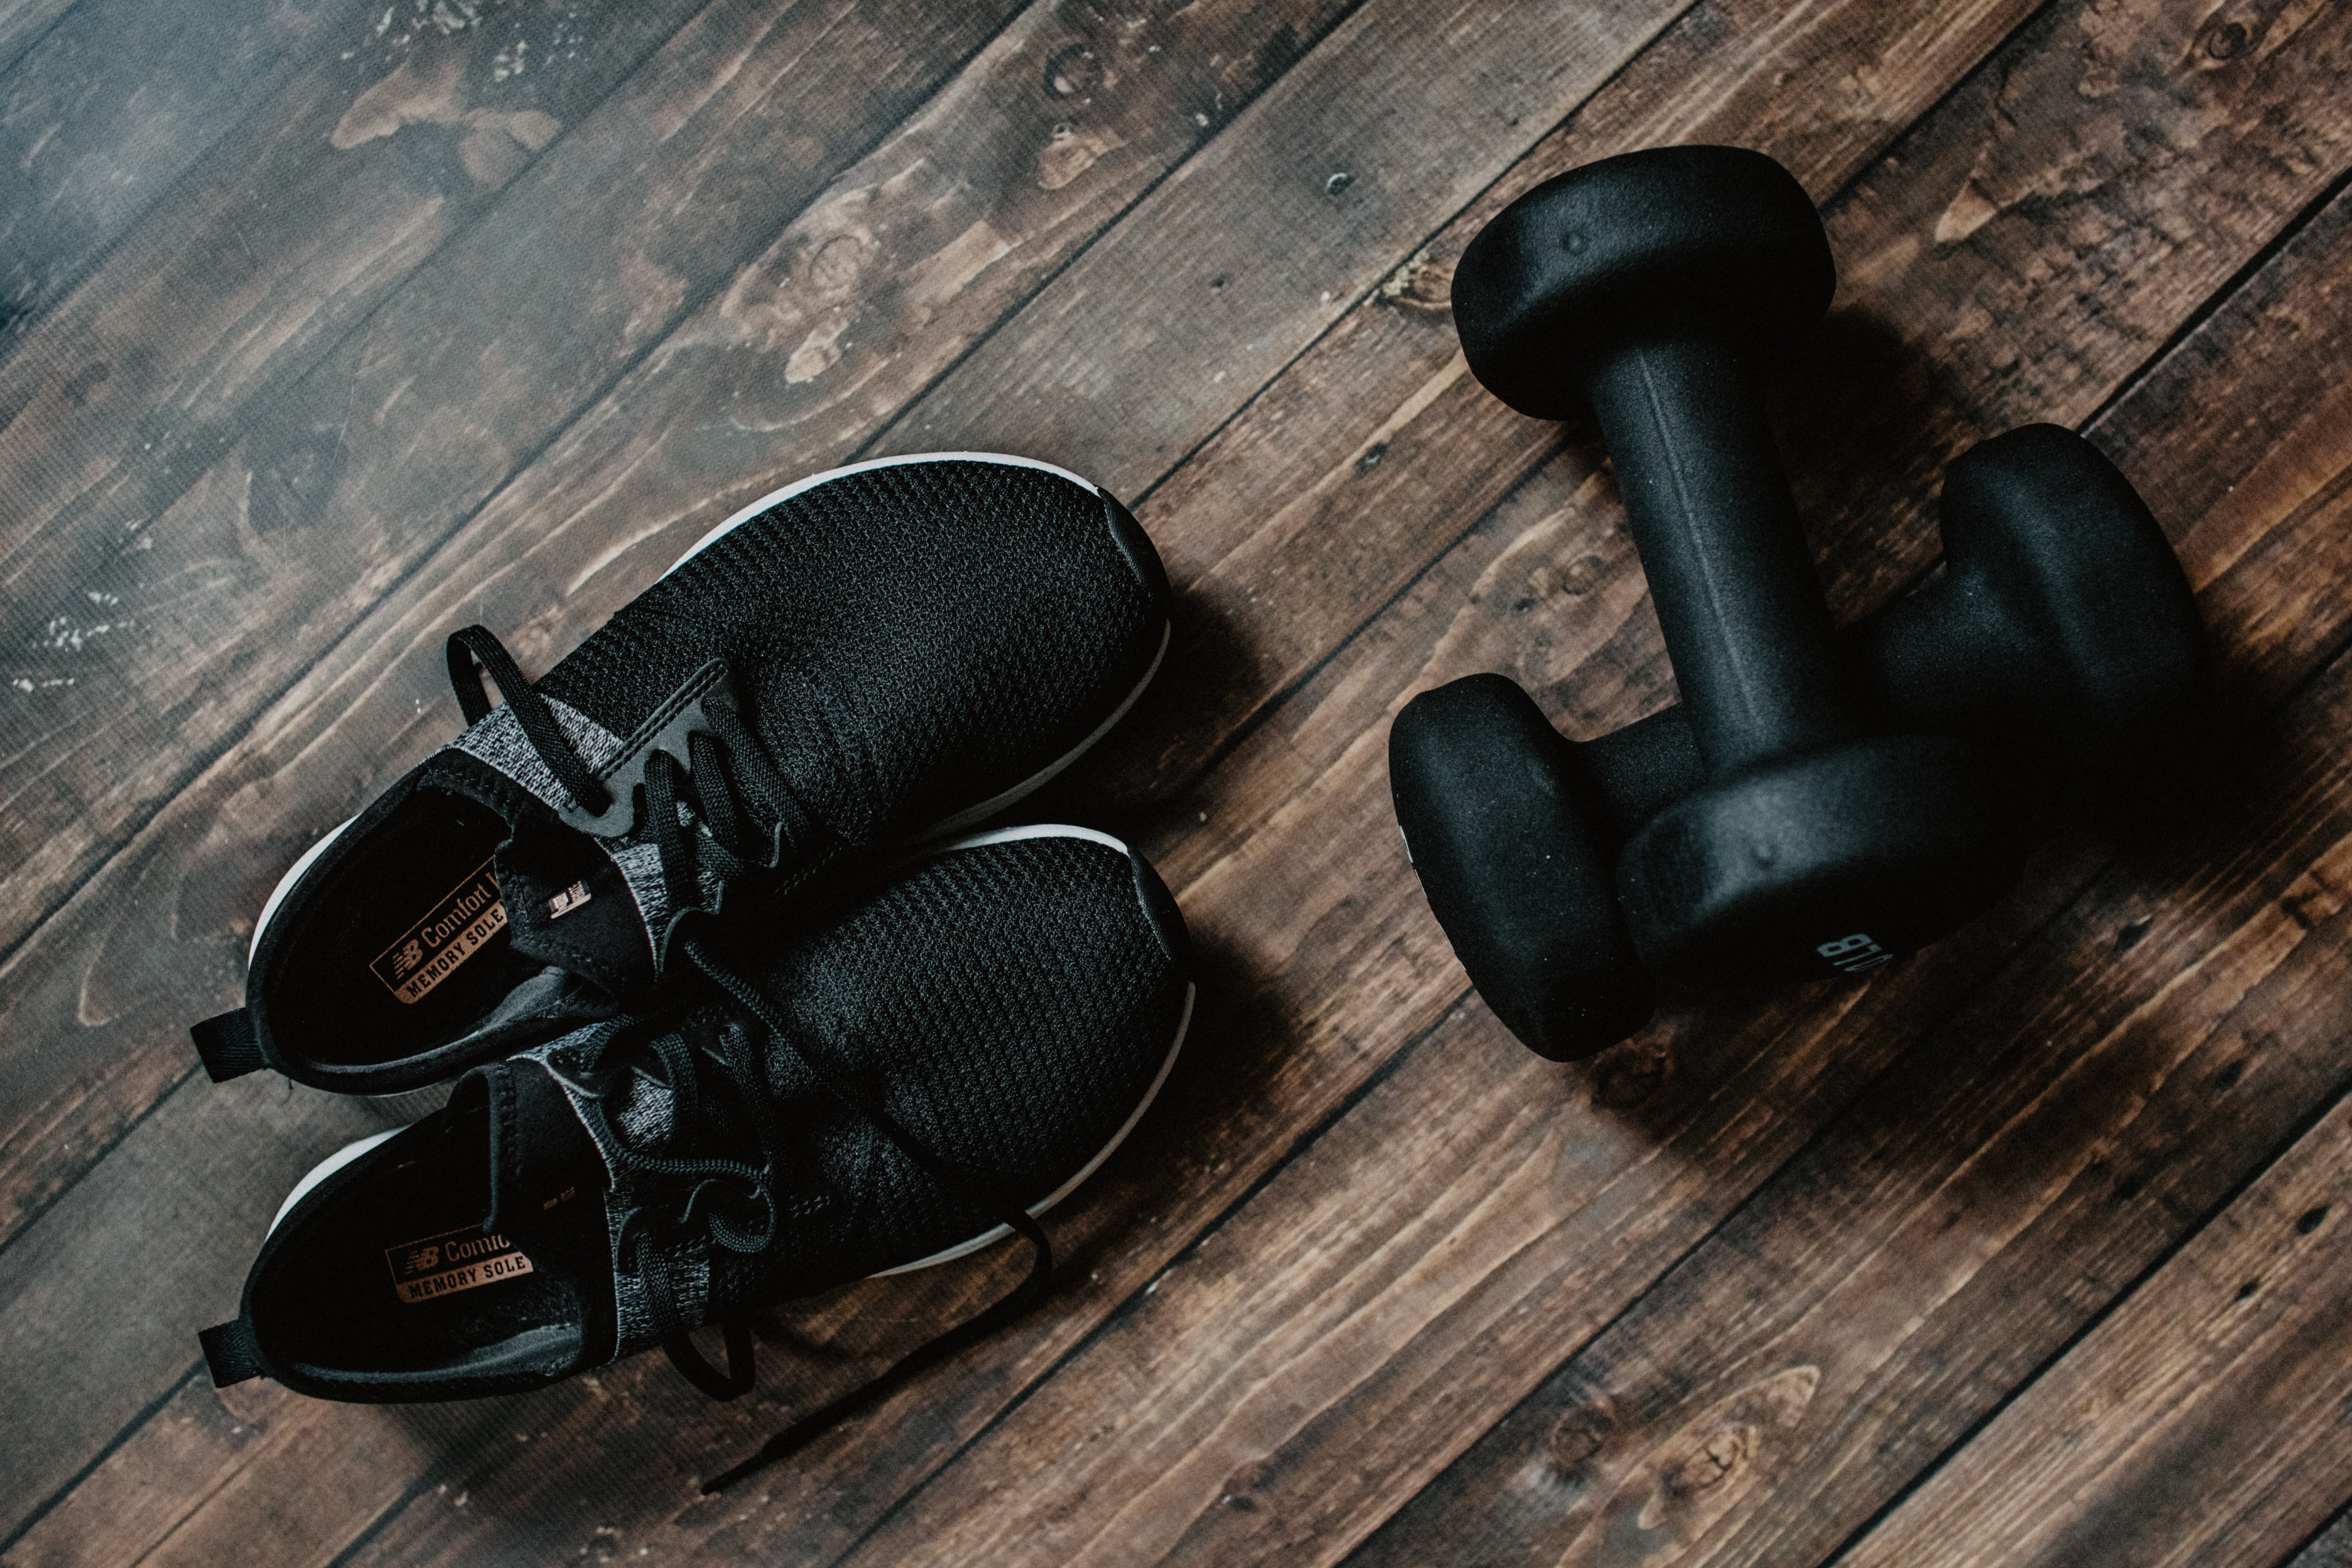 sneakers and dumbells